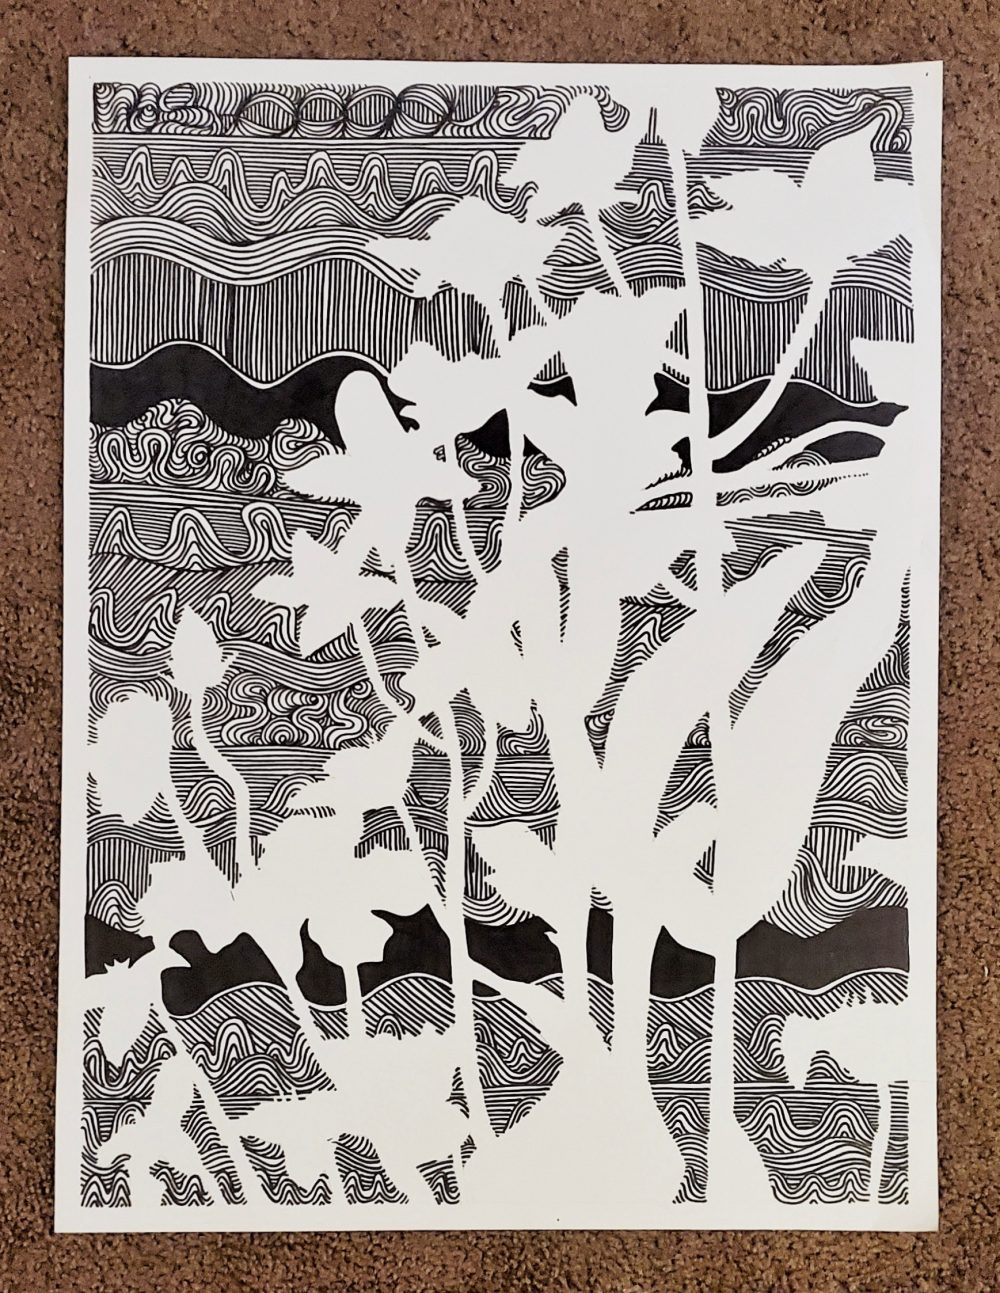 """Sydney Erickson; Blank Blossoms, 2020; Ink on Paper; 24 x 18""""; Drawing"""